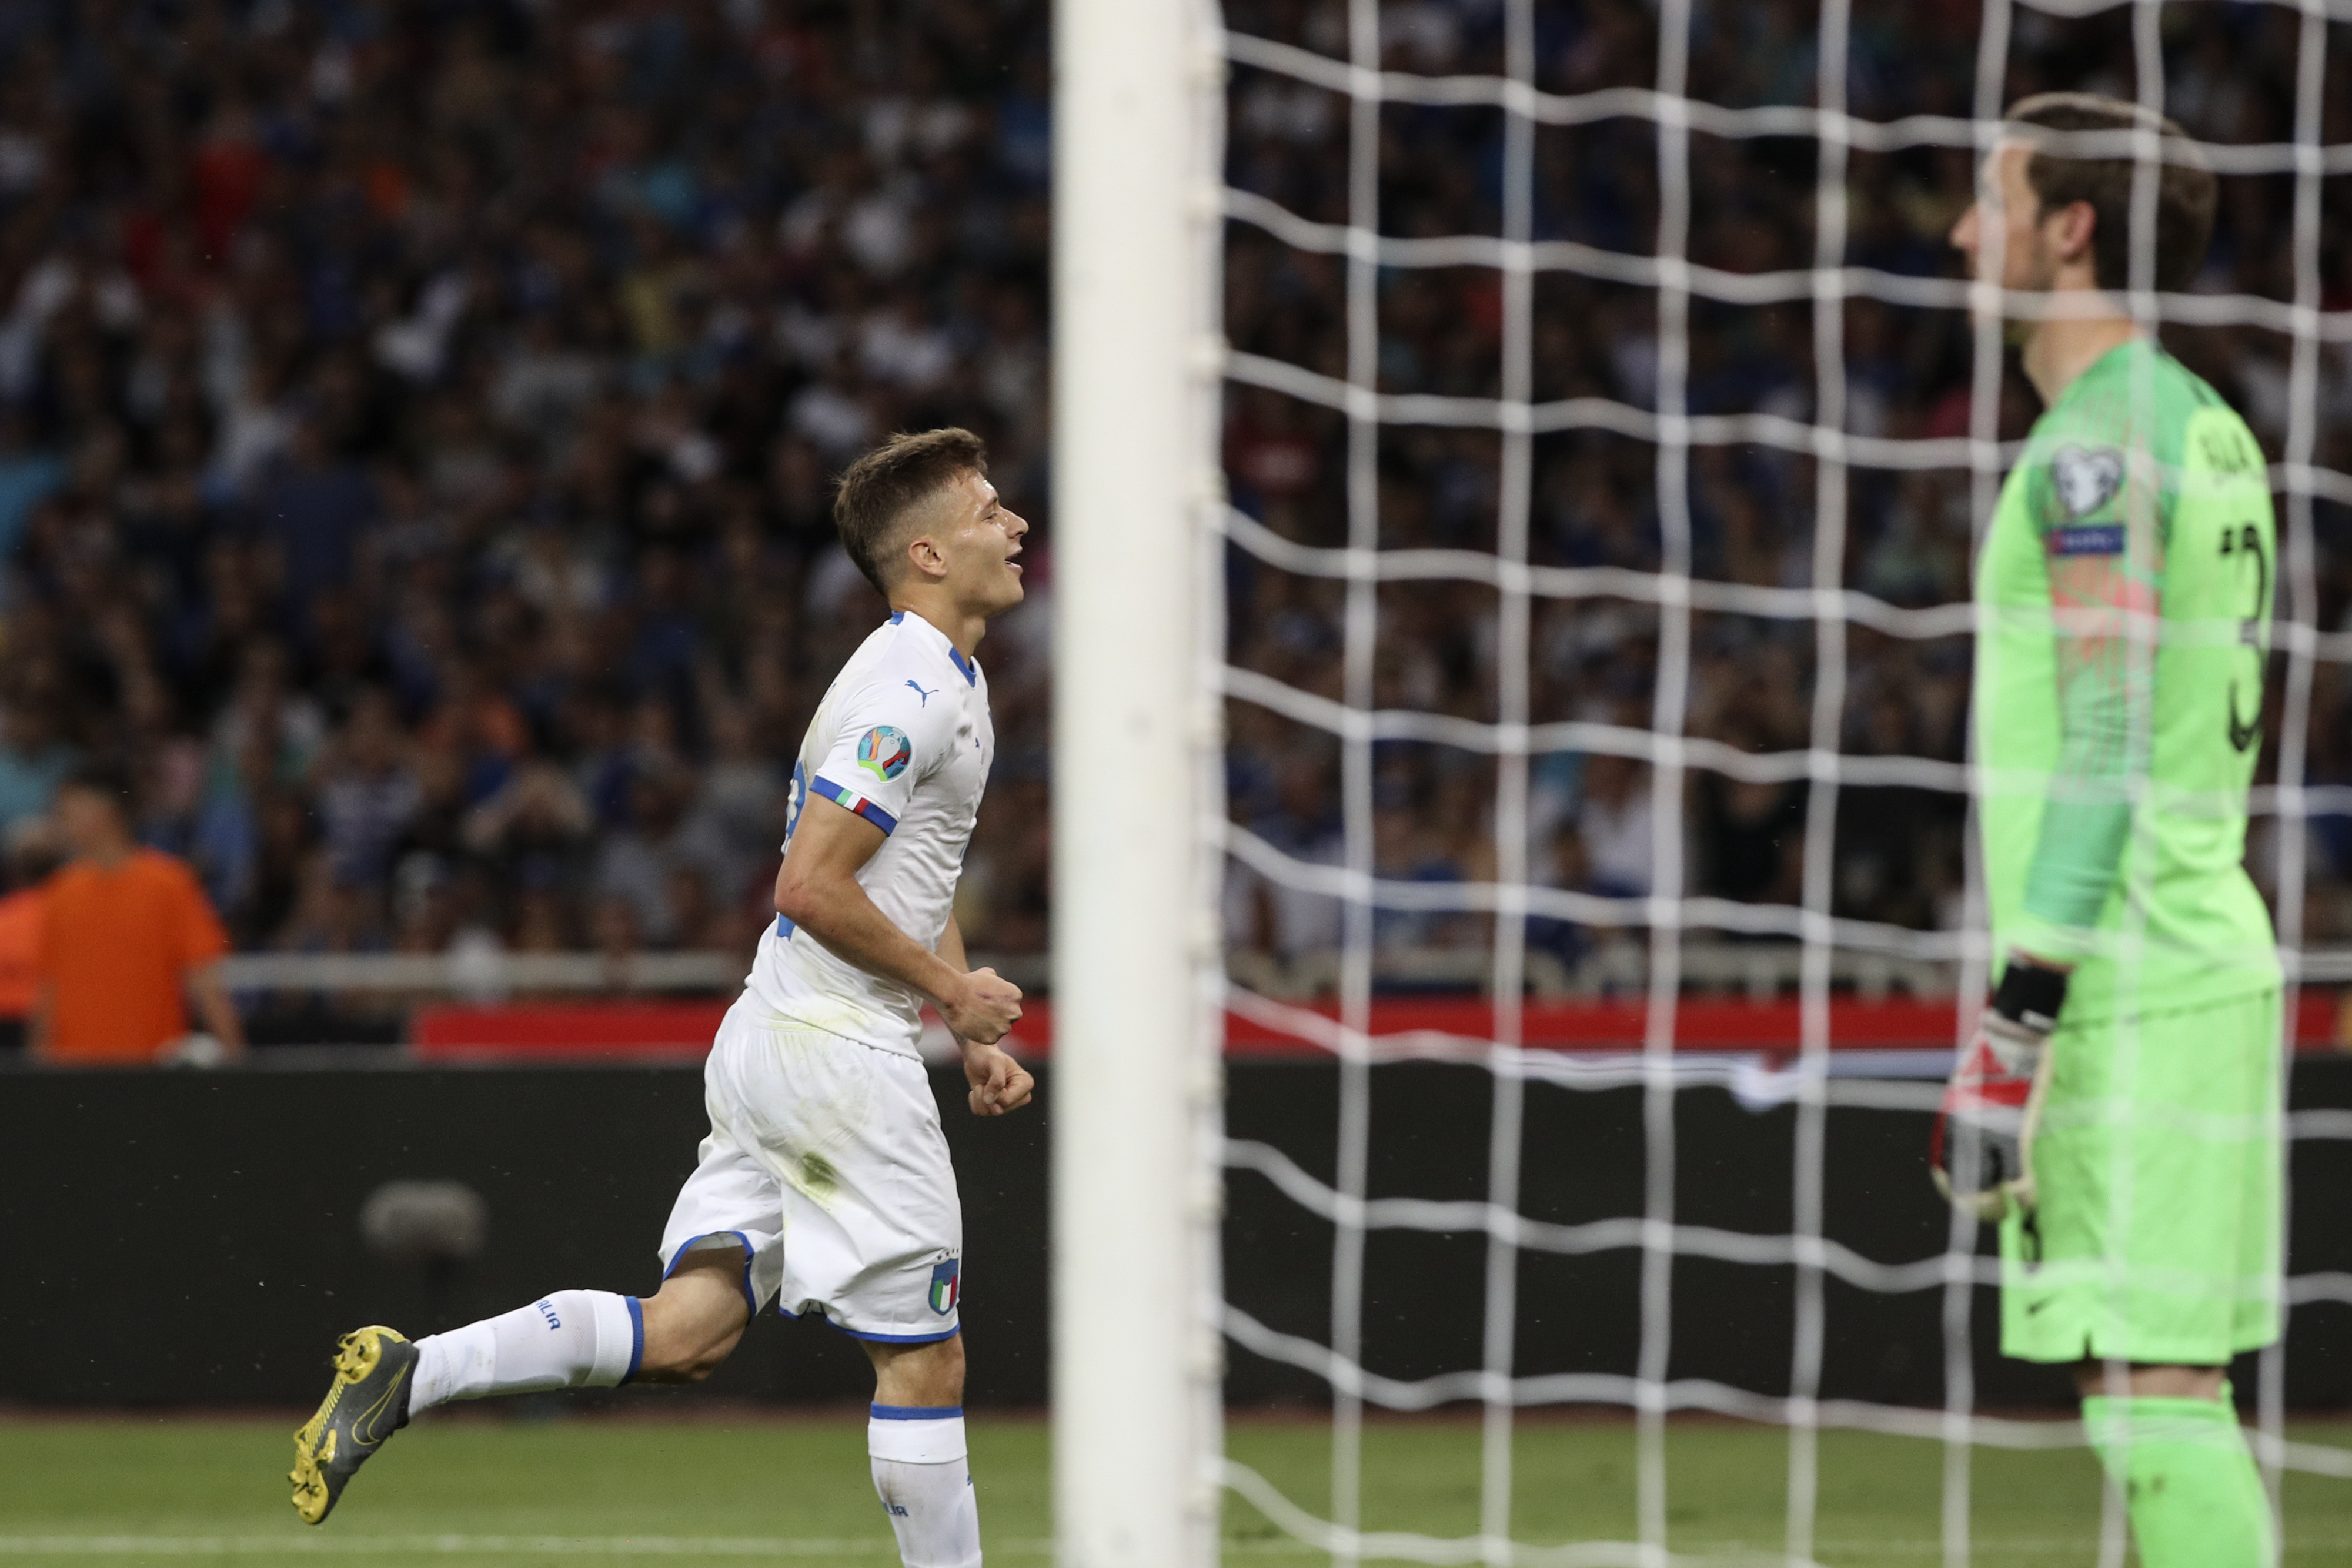 Barella after scoring Italy's opening goal of the game (Image Credit: PA)